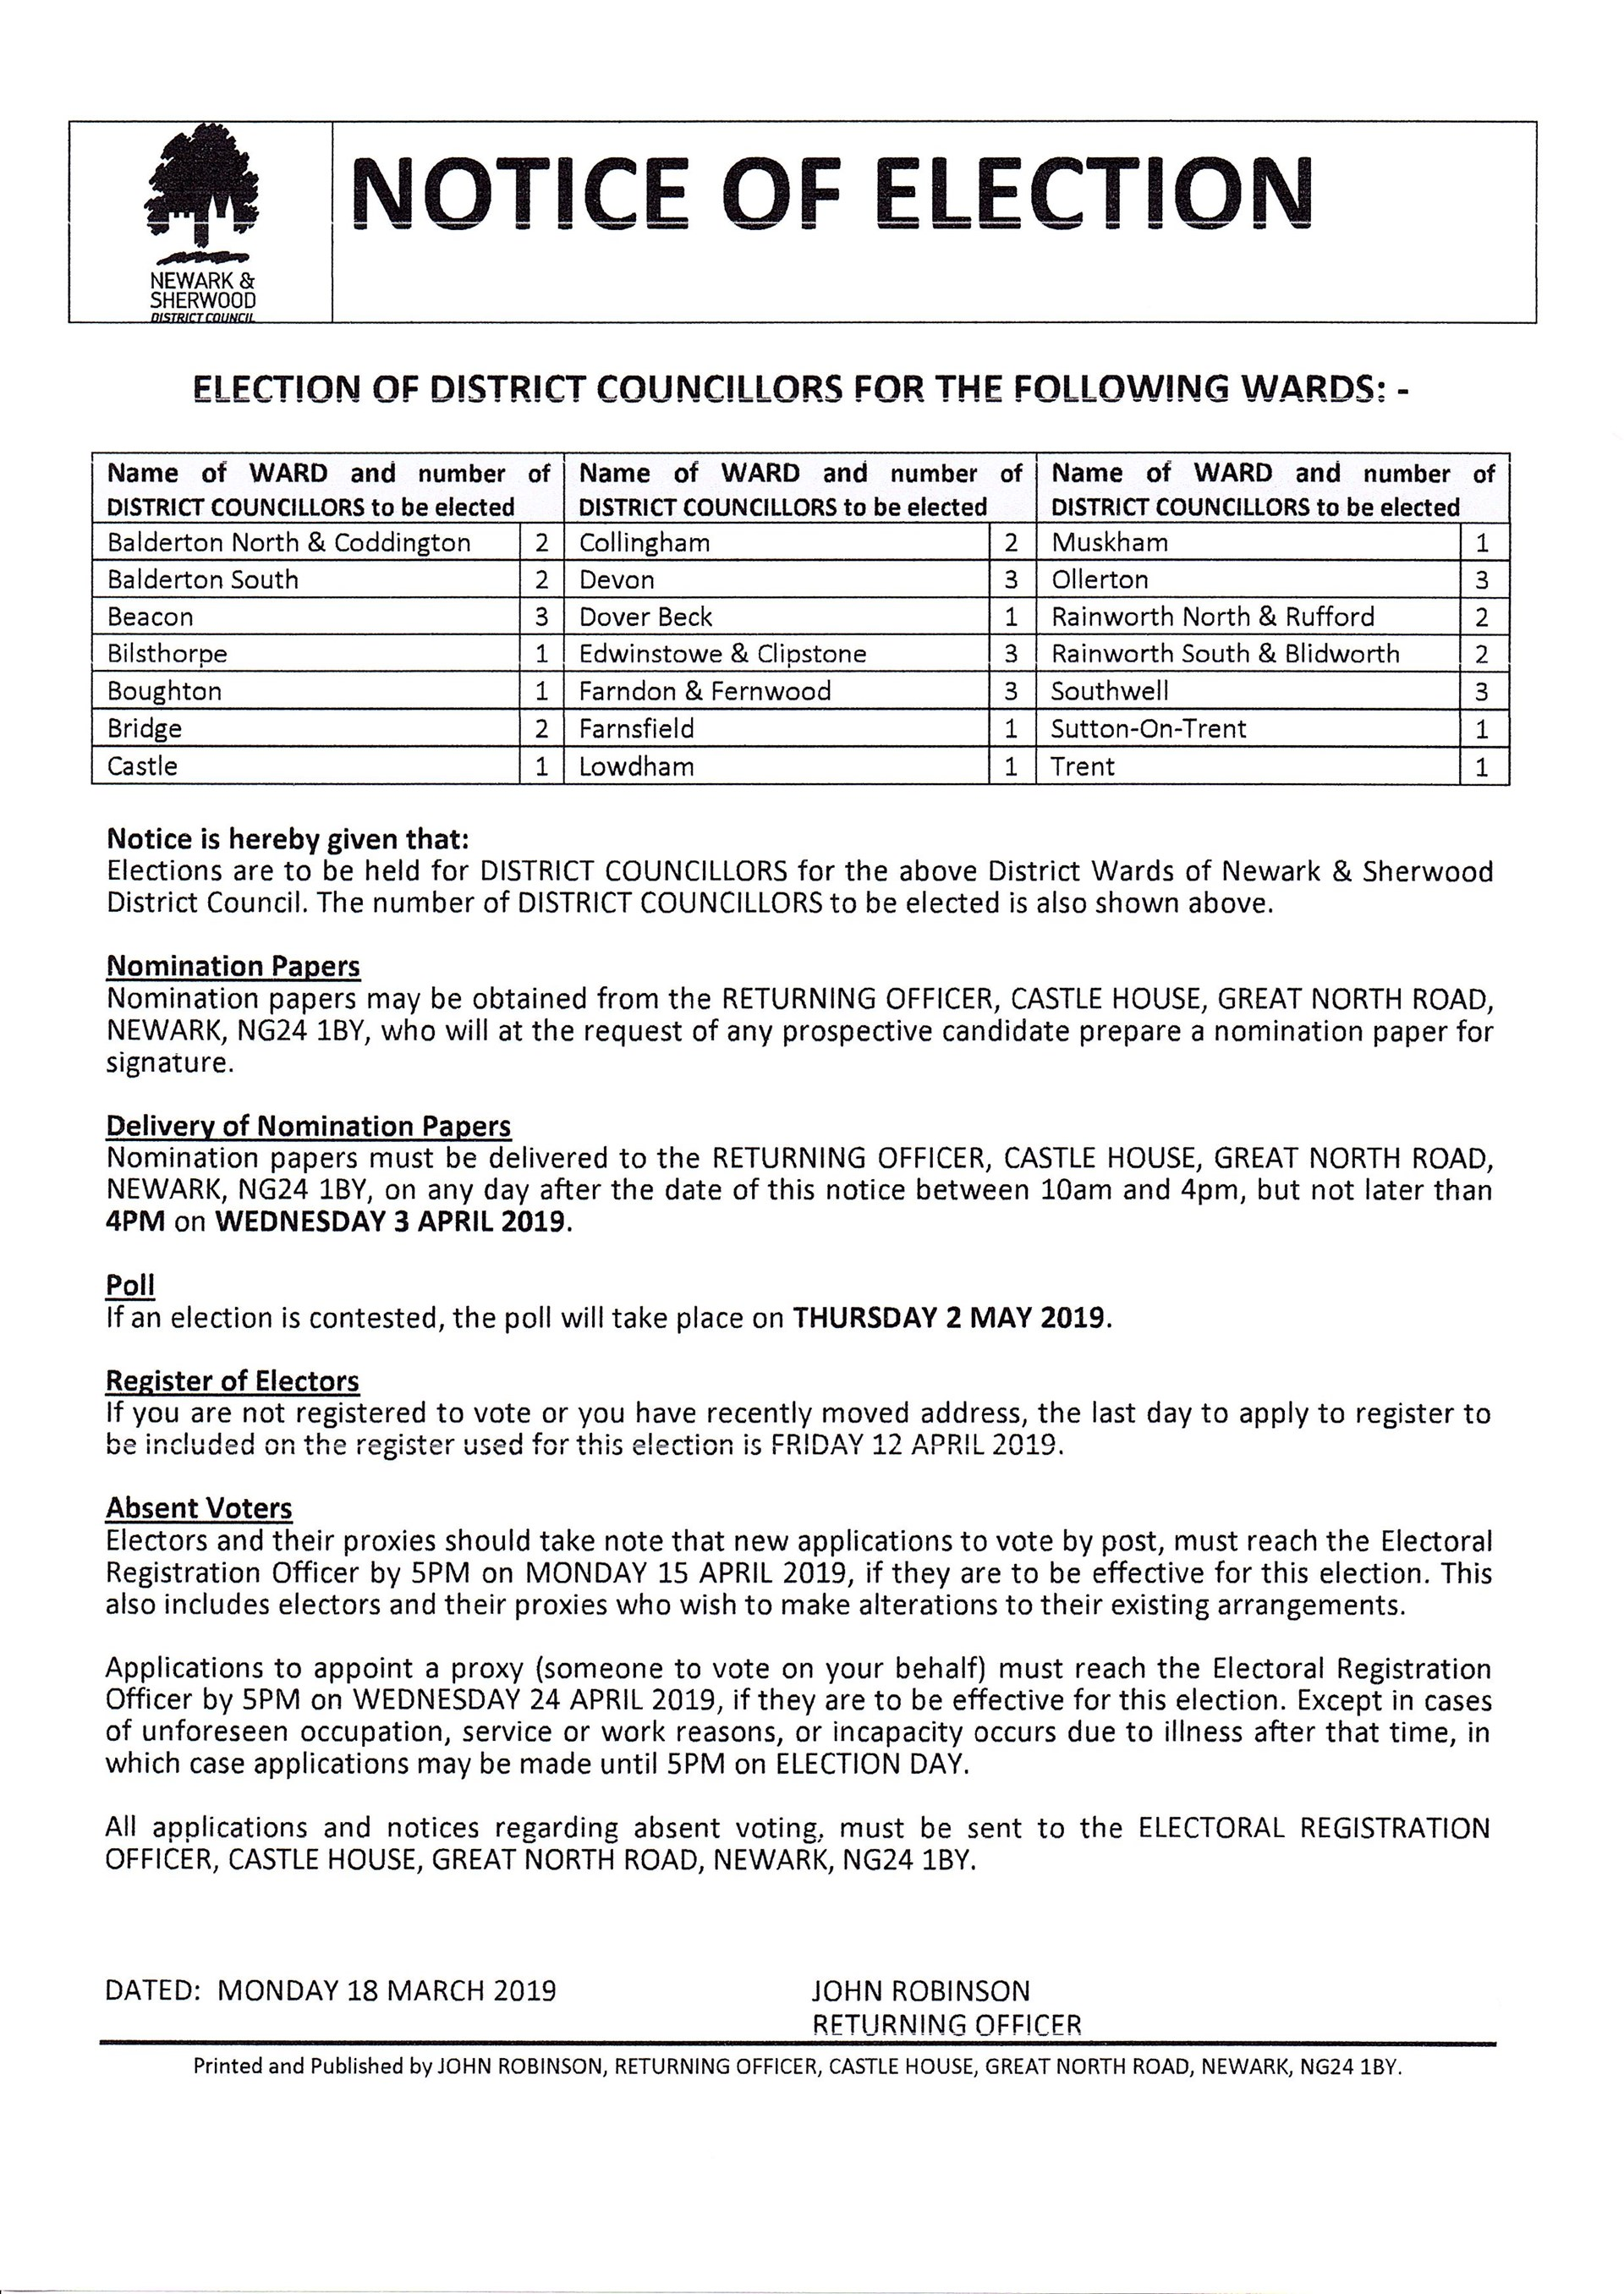 DISTRICT COUNCIL ELECTION NOTICE MAY 2019